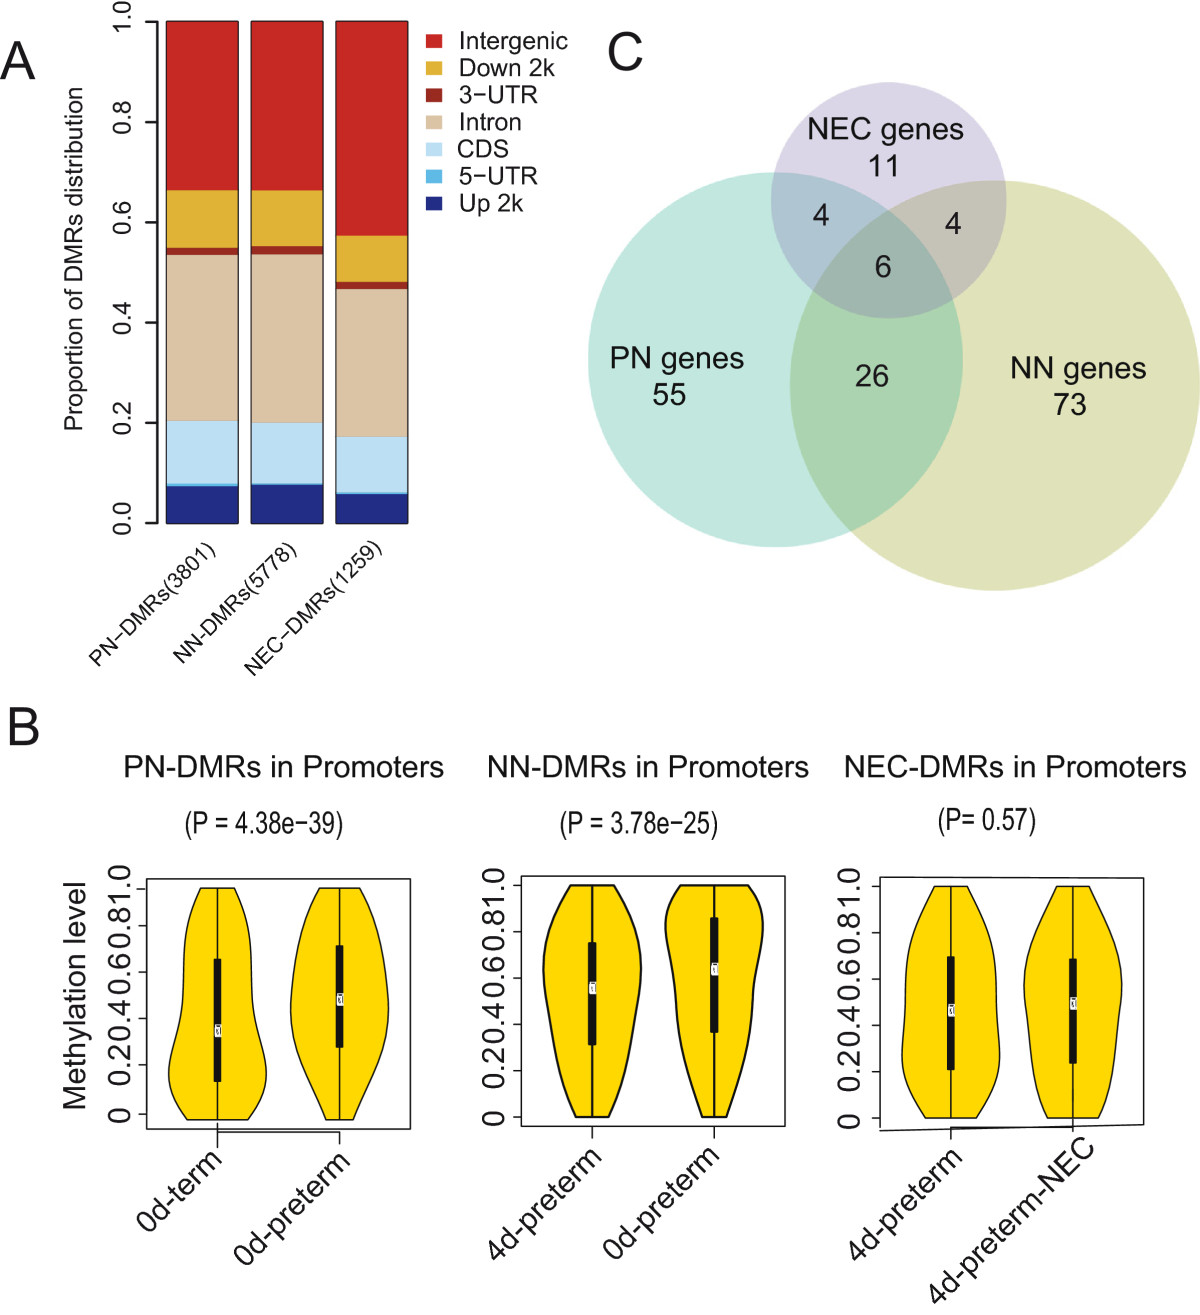 https://static-content.springer.com/image/art%3A10.1186%2F1471-2164-15-716/MediaObjects/12864_2014_Article_6393_Fig2_HTML.jpg